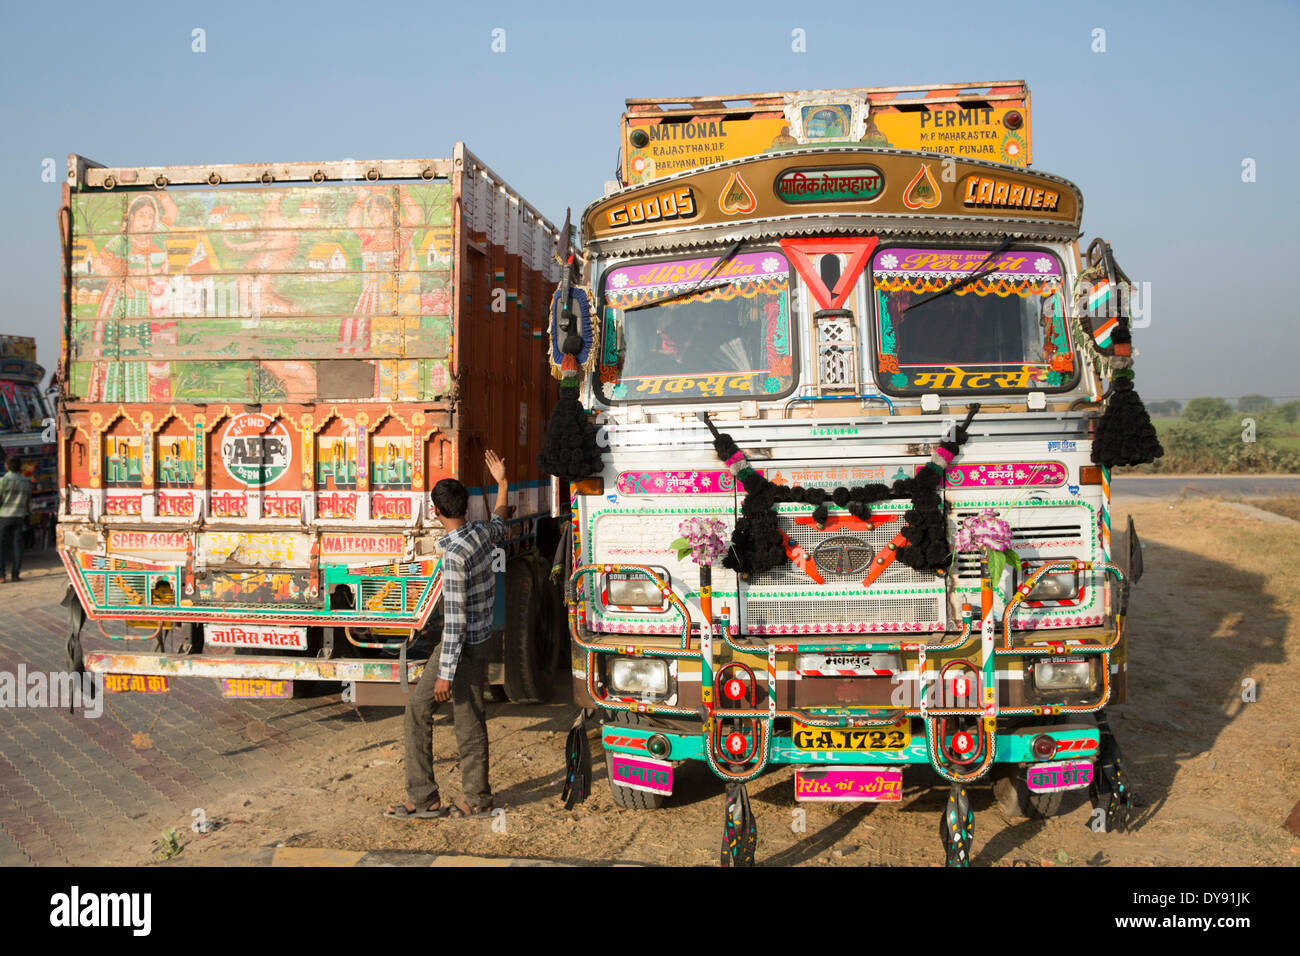 Indian, trucks, Asia, India, traffic, transport, colorful, bright, - Stock Image